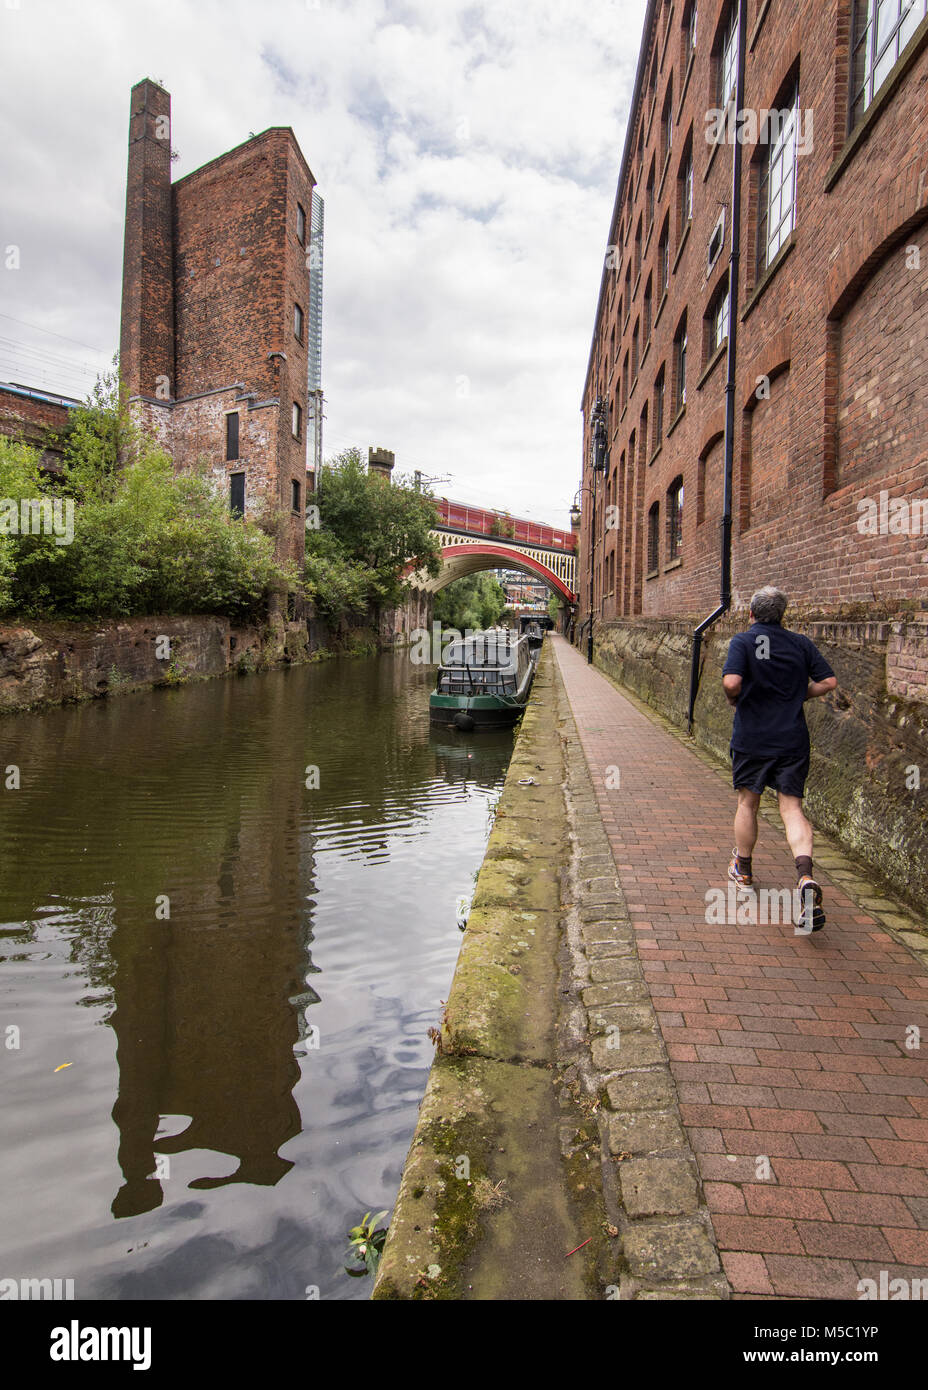 Manchester, England, UK - August 2, 2015: A jogger runs on the towpath of the Bridgewater Canal beside industrial - Stock Image